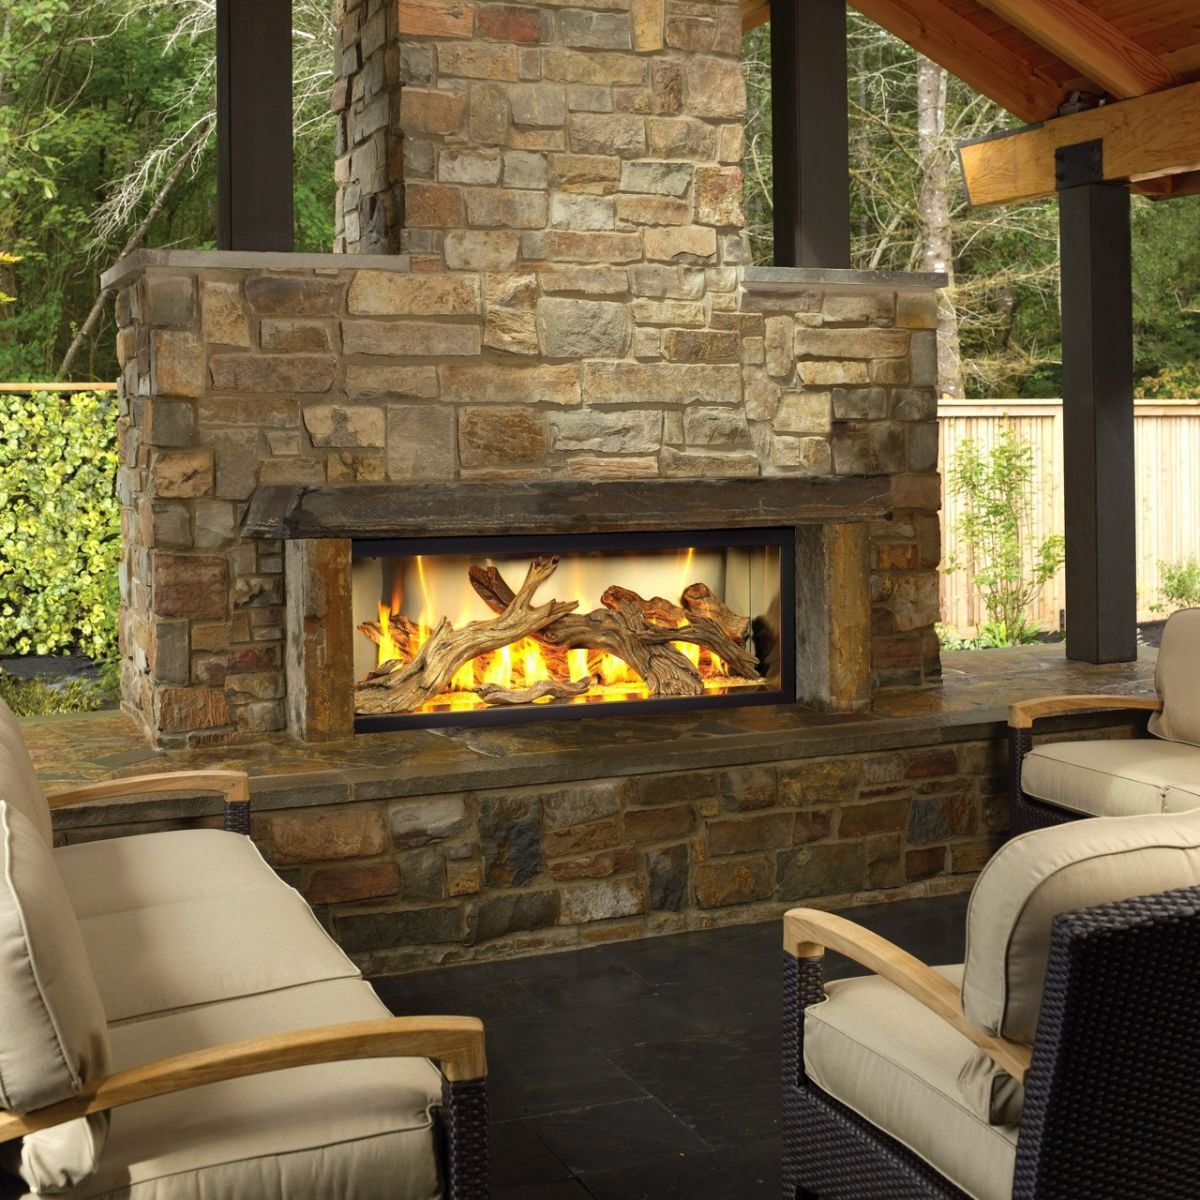 Exterior Some Pictures Of Classic Outdoor Fireplace Ideas To